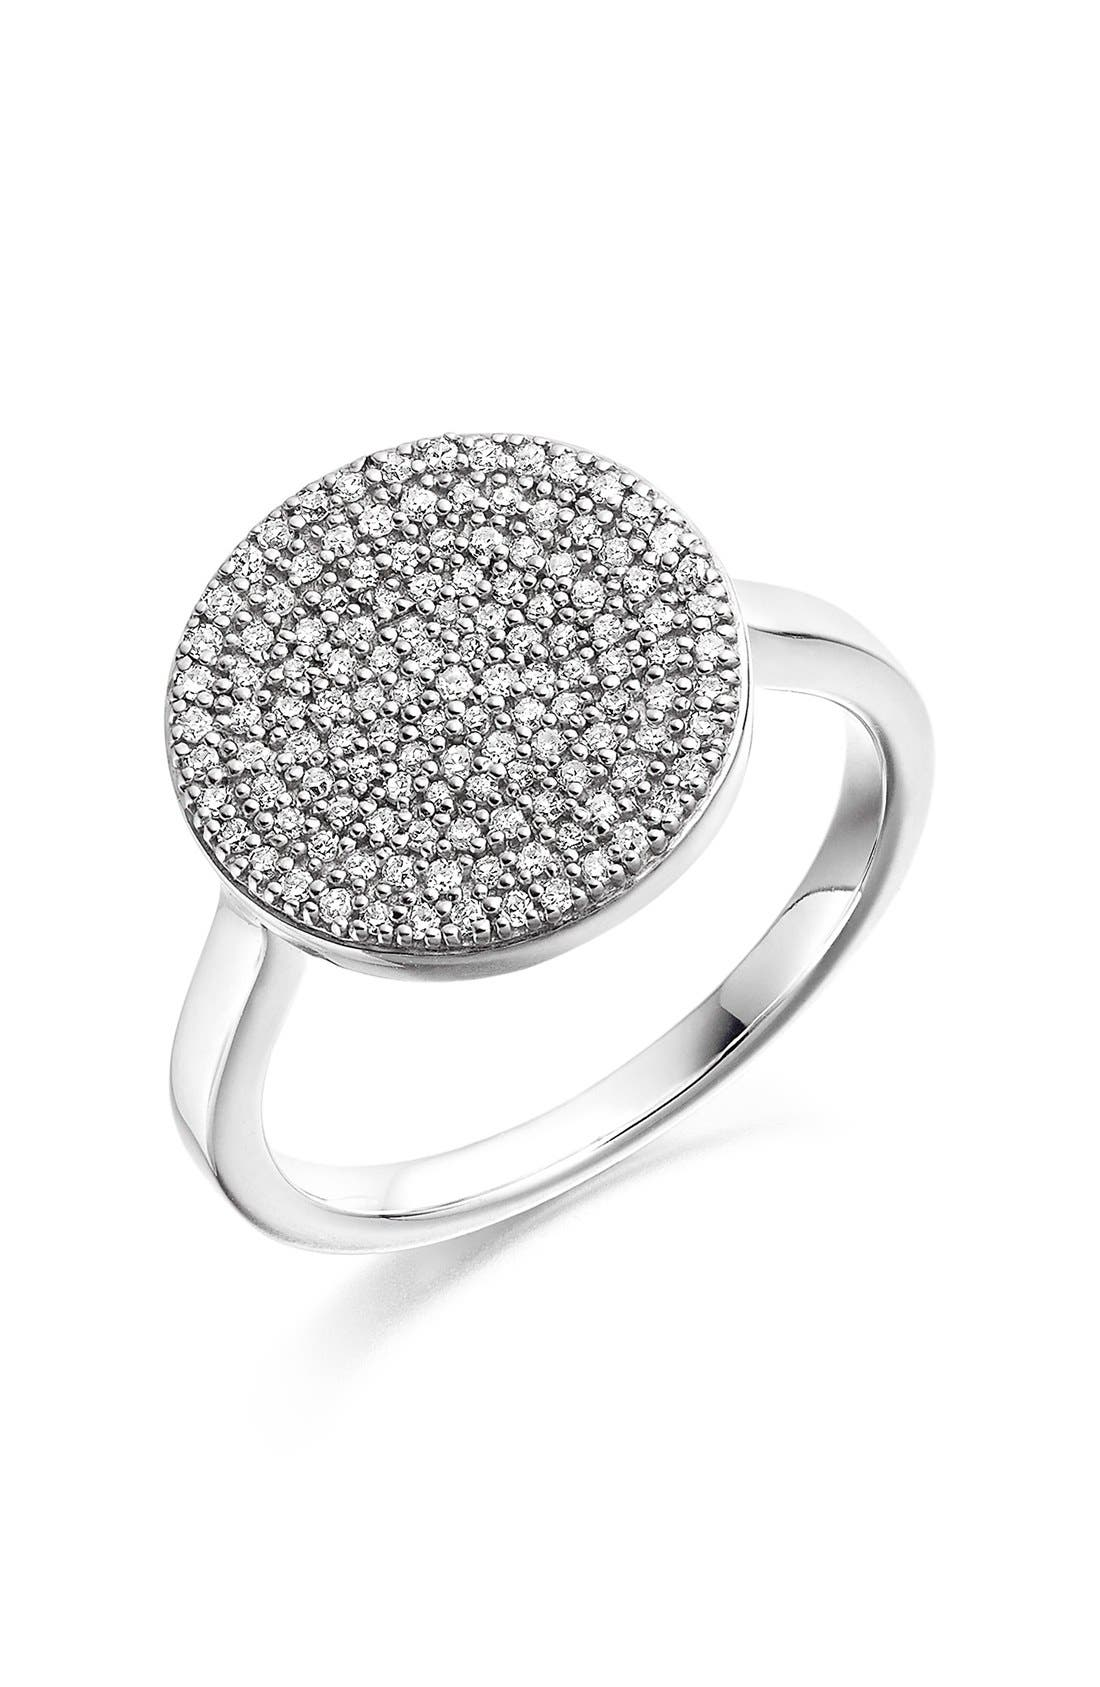 Monica Vinader 'Ava' Diamond Disc Ring